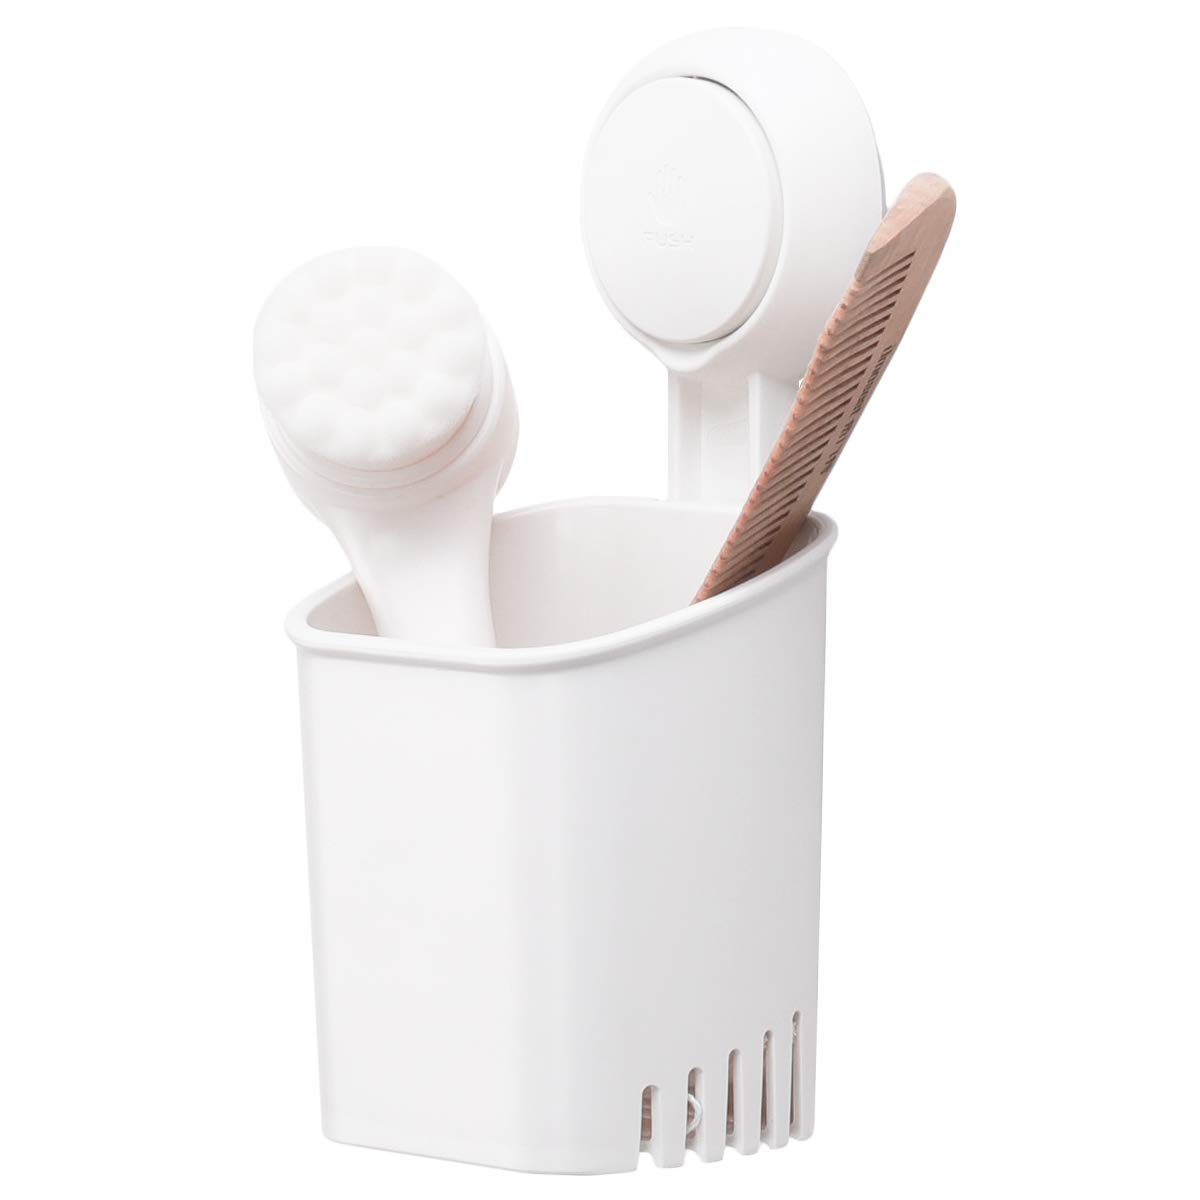 TAILI DIY Drill-Free Removable Vacuum Suction Cup Shower Caddy Toothbrush Holder with 4 Cups Washroom Bathroom Organizer